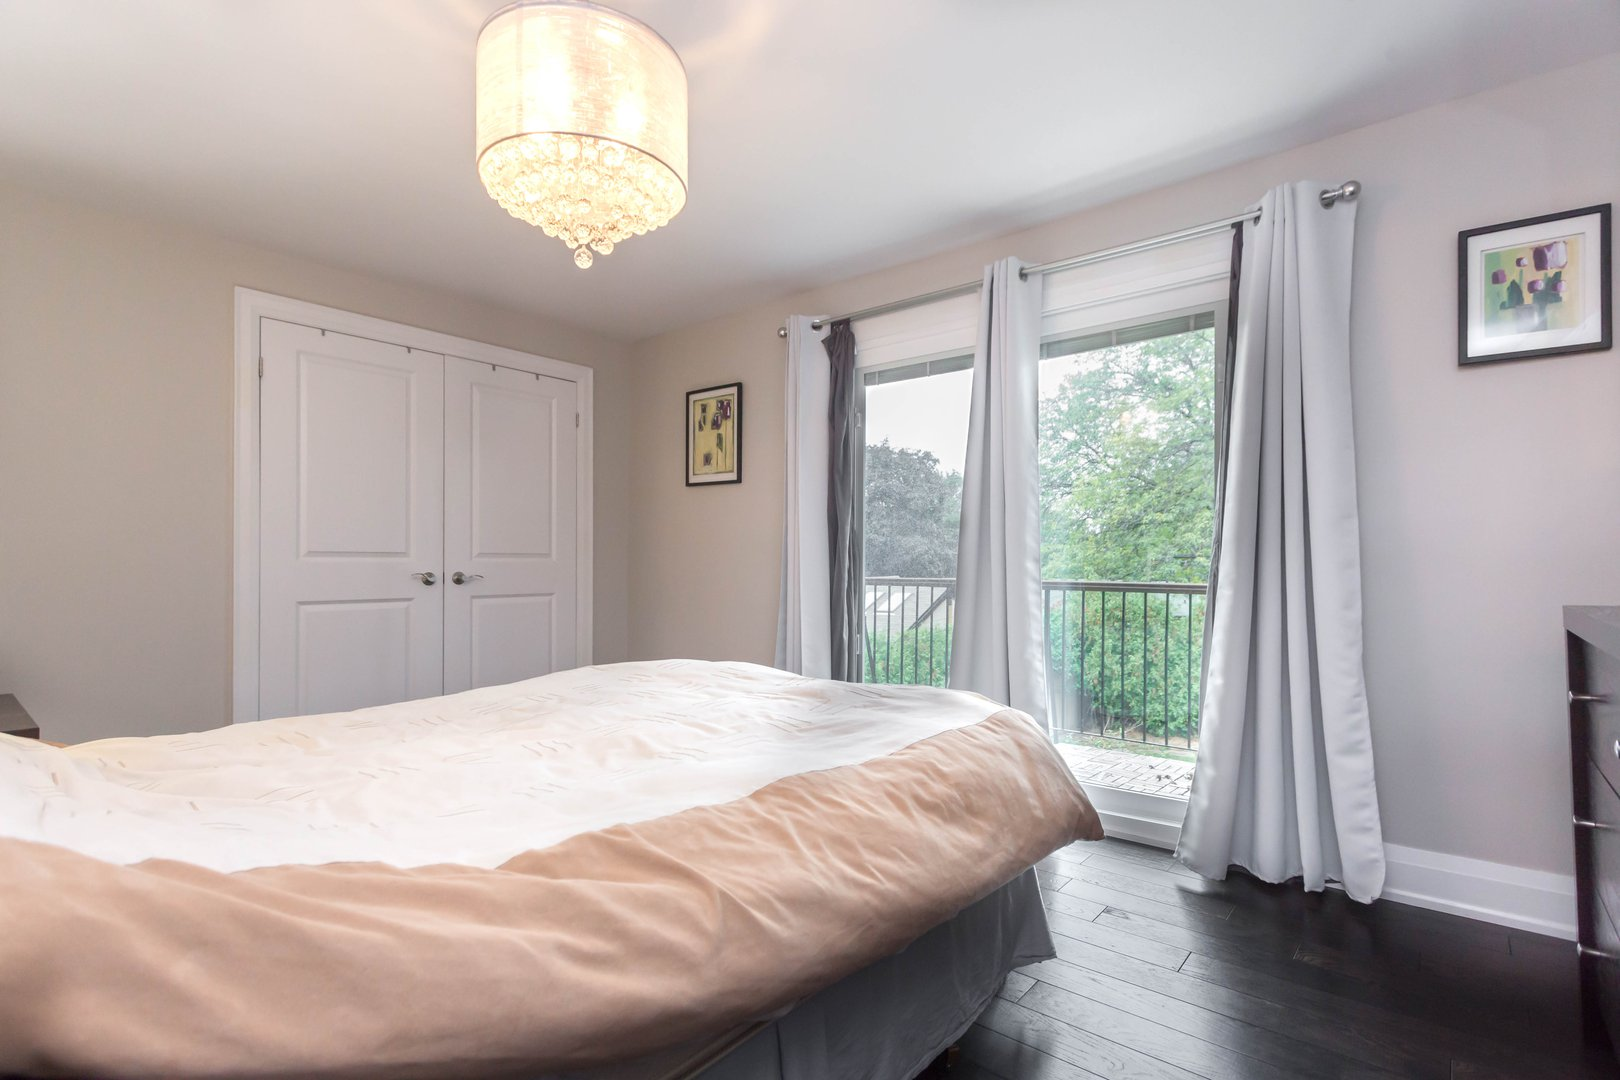 House for rent at 84 Laurel Avenue, Etobicoke, ON. This is the bedroom with notable chandelier, natural light and hardwood floor.